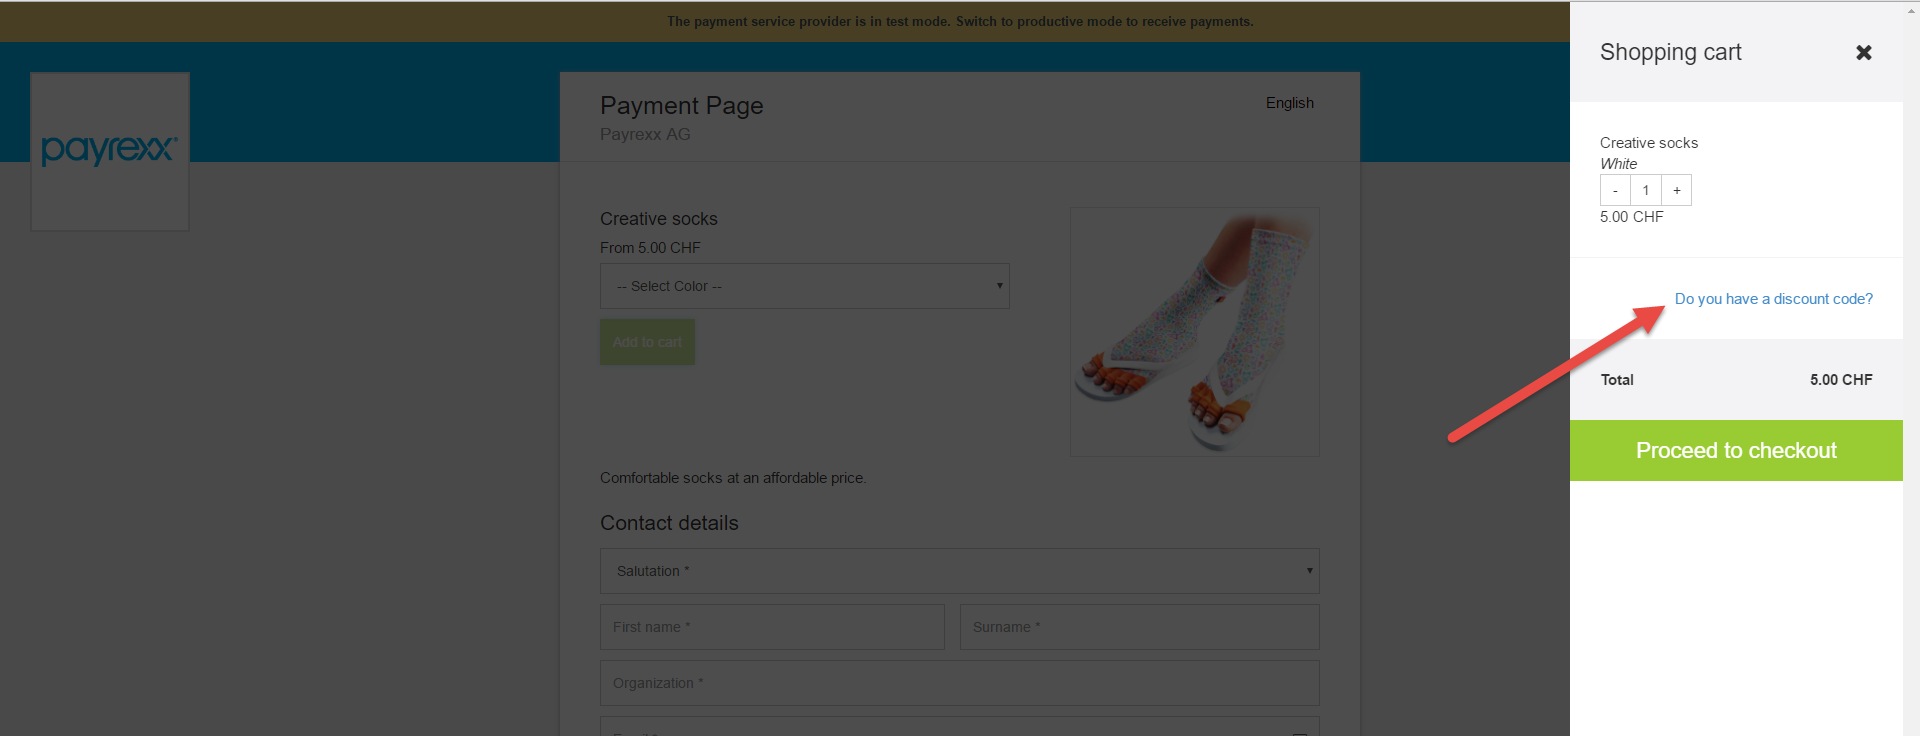 How can I create a sales page with a discount - coupon? : Customer